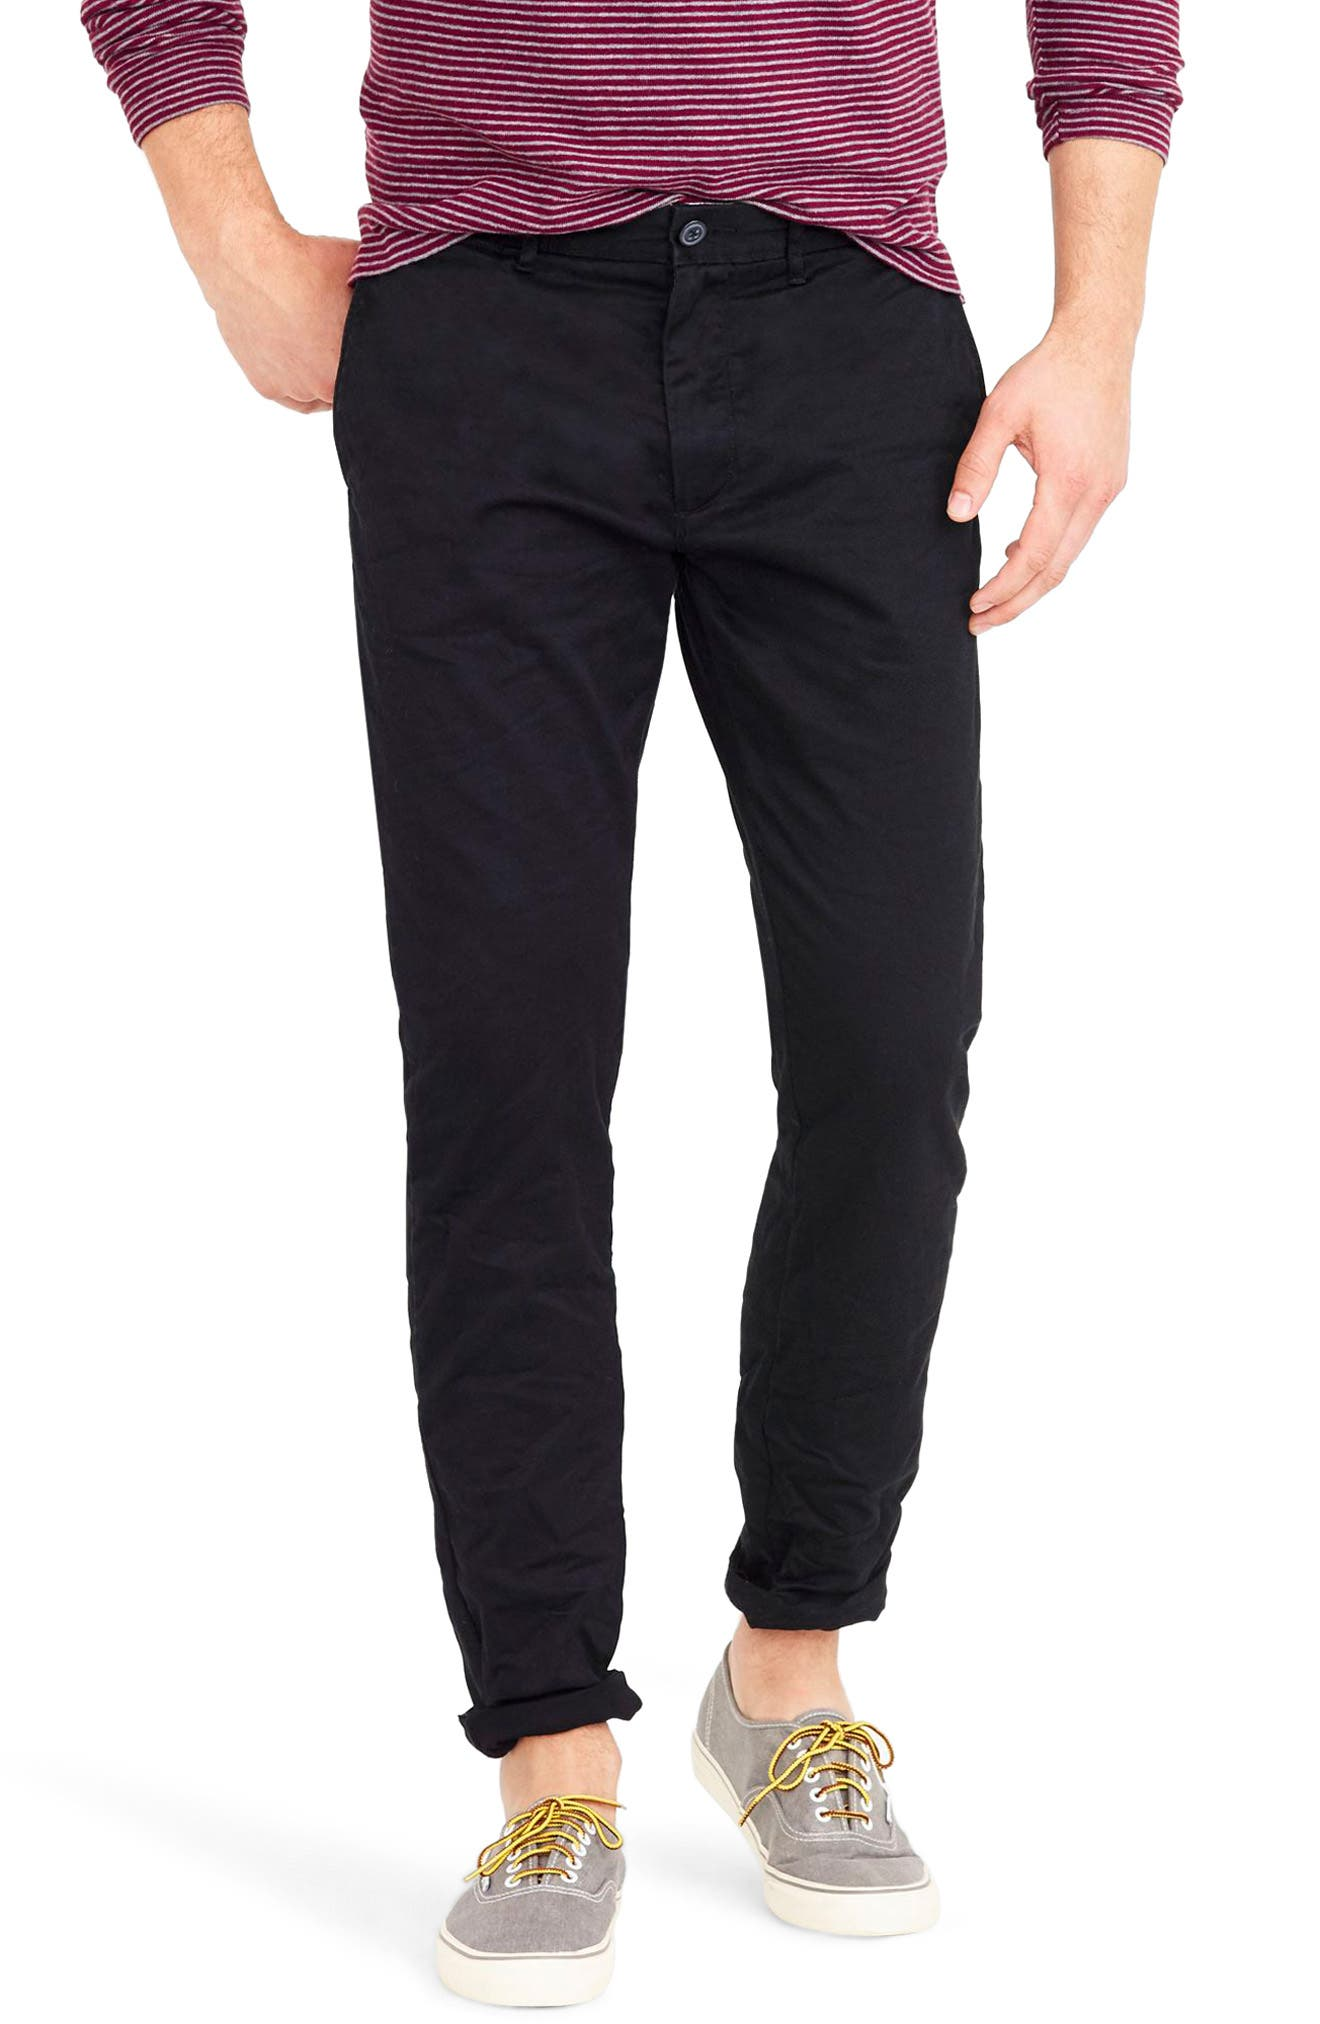 484 Slim Fit Stretch Chino Pants,                             Main thumbnail 1, color,